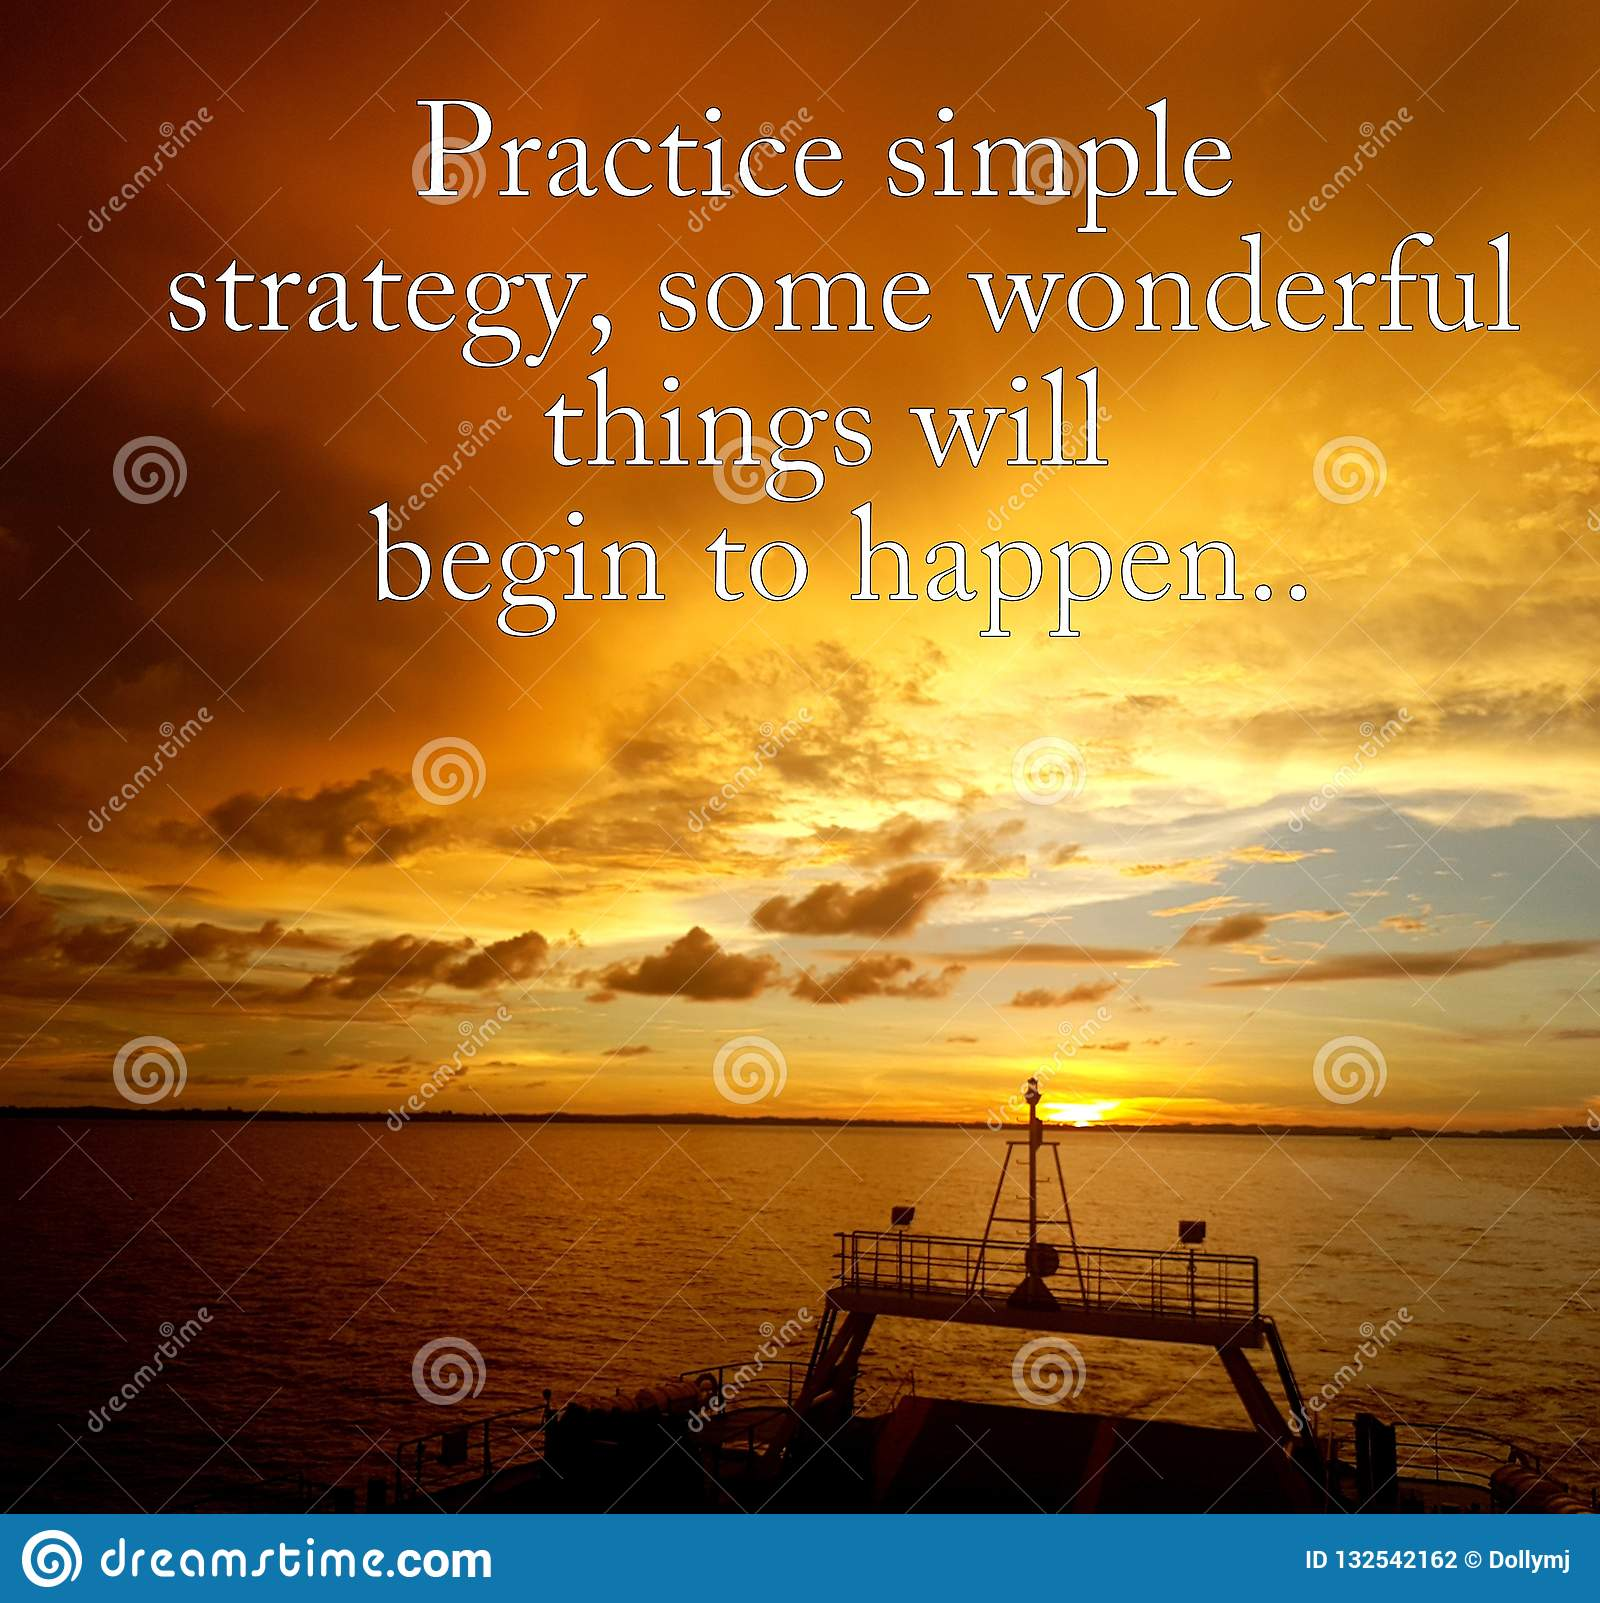 Quotes For Simple Thing In Life Stock Photo Image Of Meditation